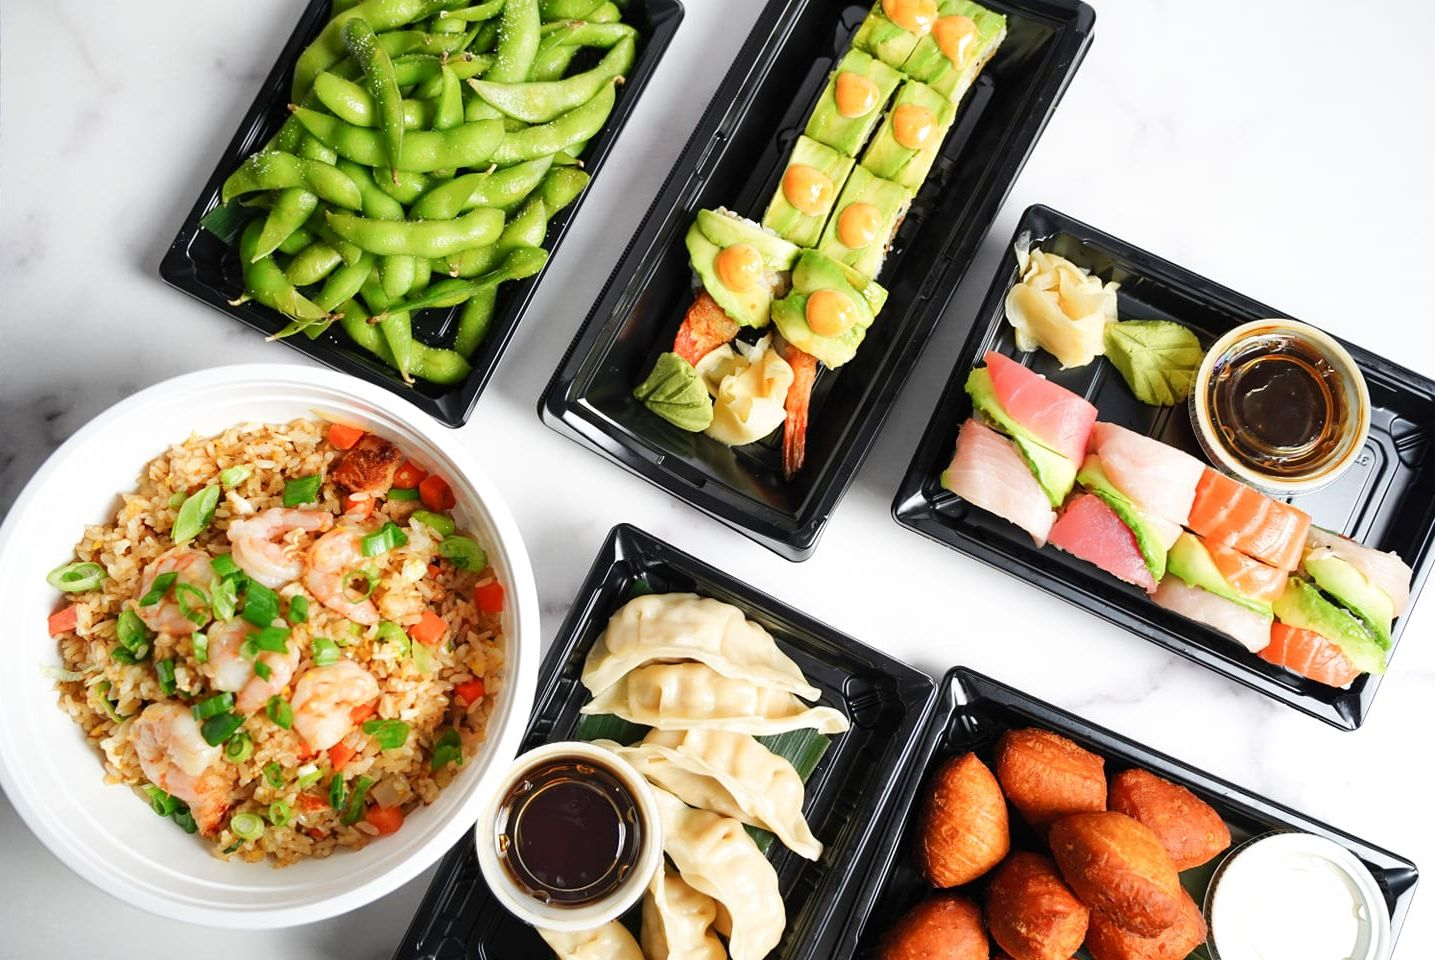 Sushi Maki and Community Donors Provide 13,000 Crisis Meals to Miami Families